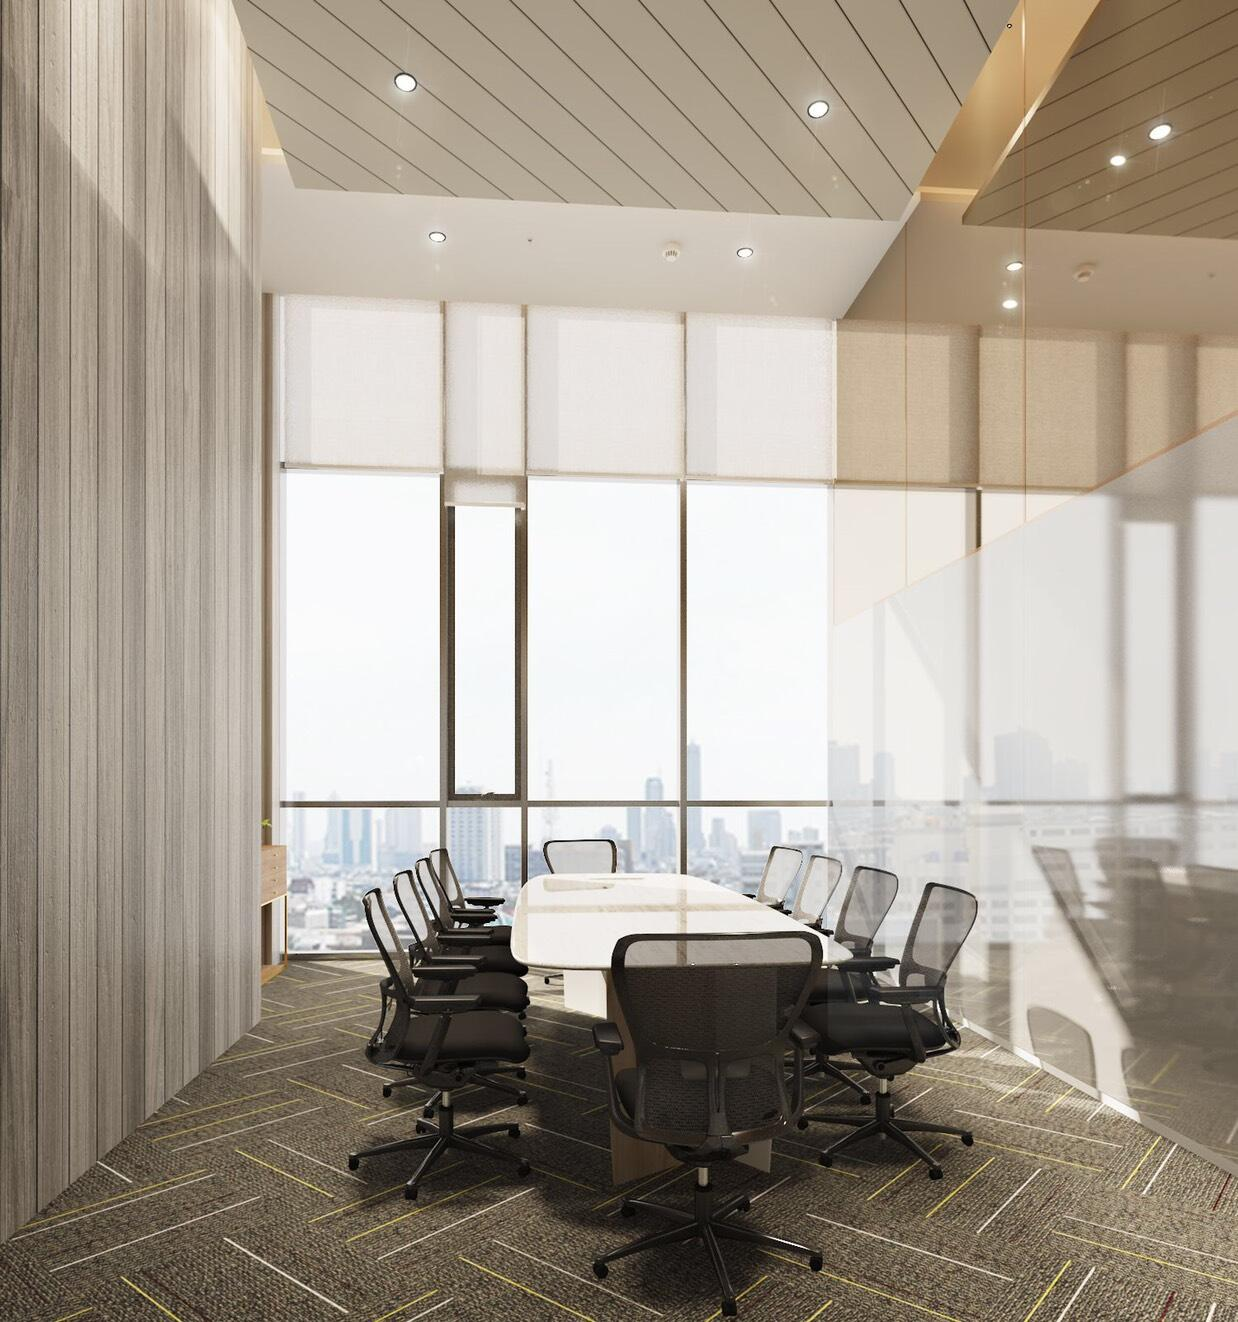 Triple Y Hotel features two small meeting rooms accommodating up